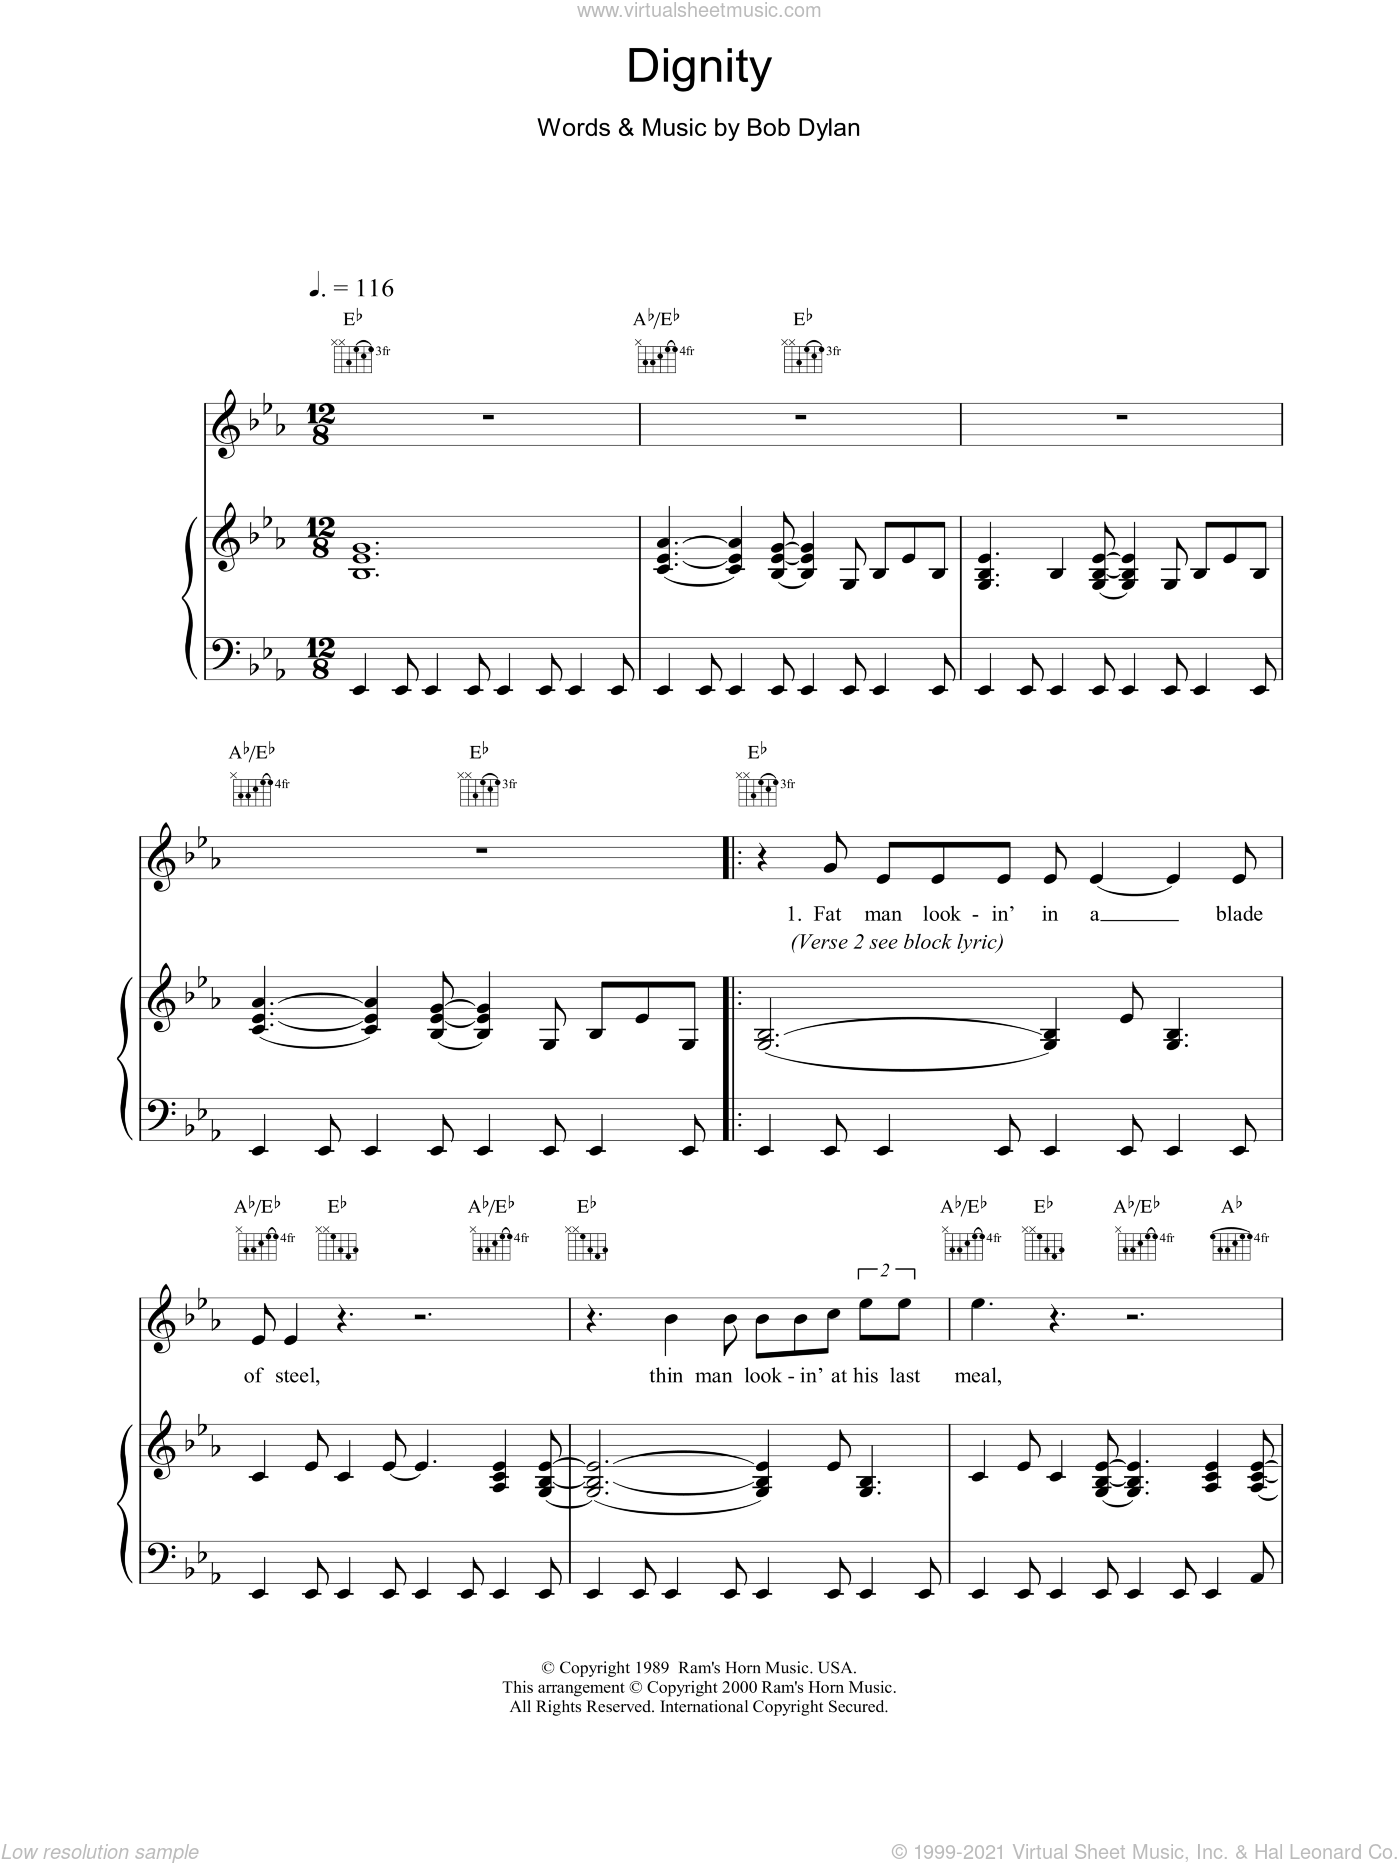 Dignity sheet music for voice, piano or guitar by Bob Dylan